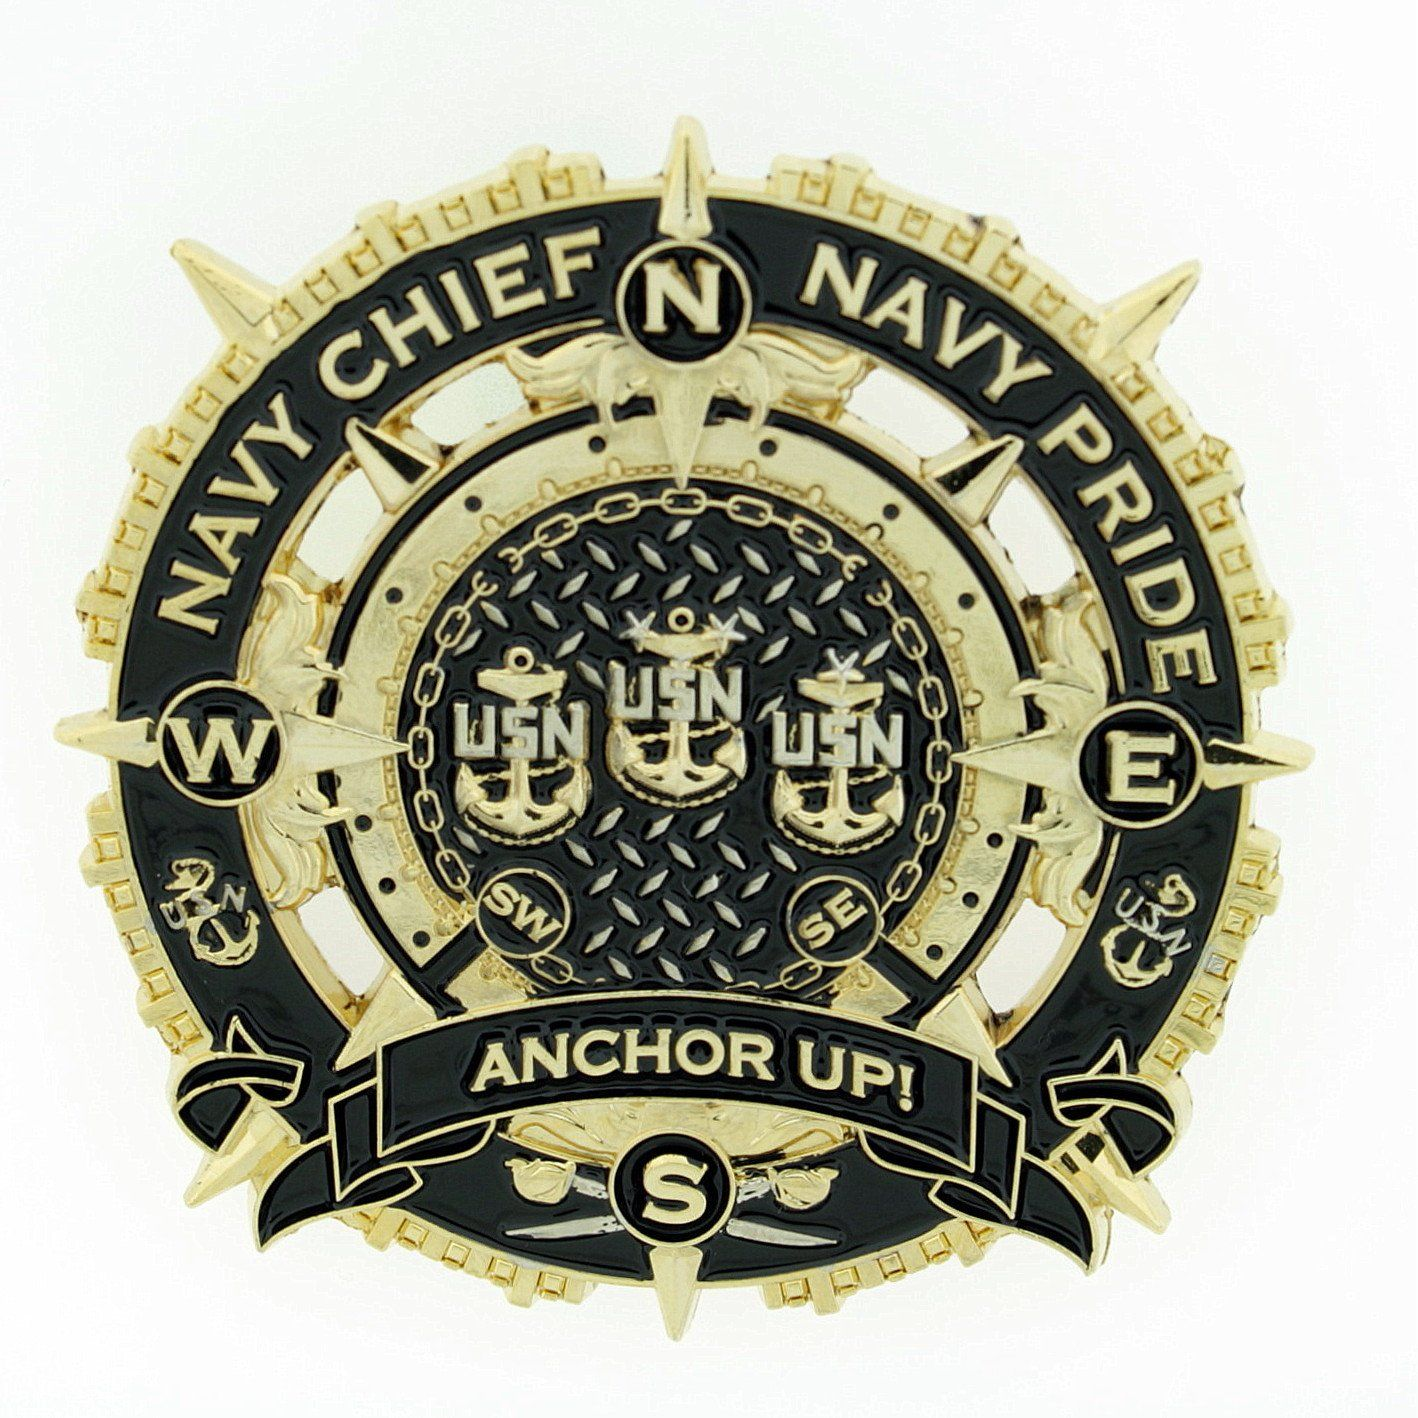 Cpo chief male compass coin navy chief navy pride anchor up cpo chief male compass coin navy chief navy pride anchor up biocorpaavc Gallery